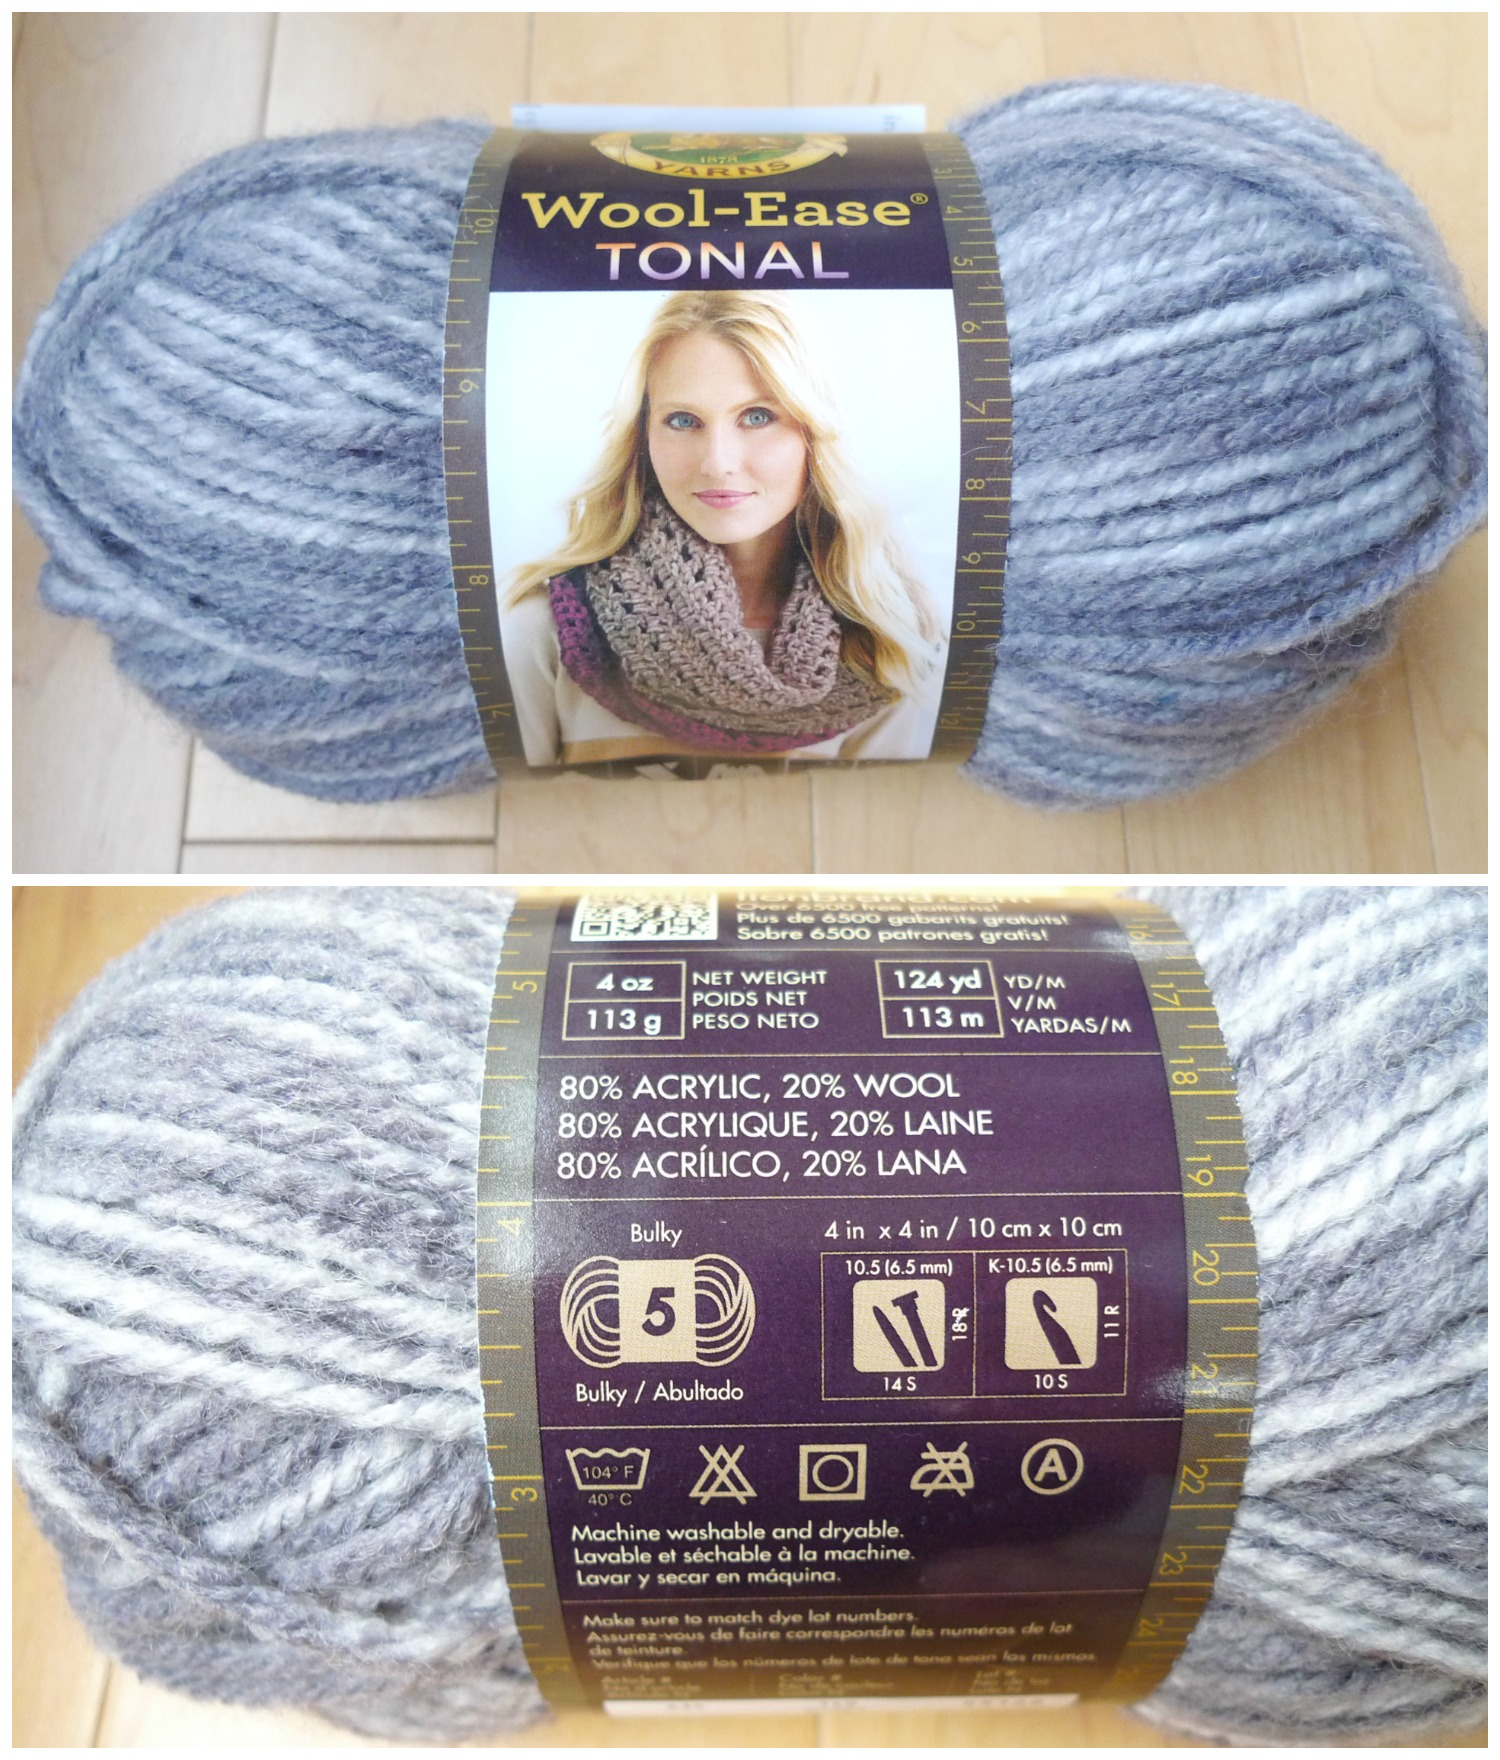 "36491ccbf41800 It is a bulky (level 5) yarn that is 80% acrylic and 20% wool. I  immediately gravitated towards the grey shades in ""Grey Marble"" (lighter  grey) and ""Smoke"" ..."